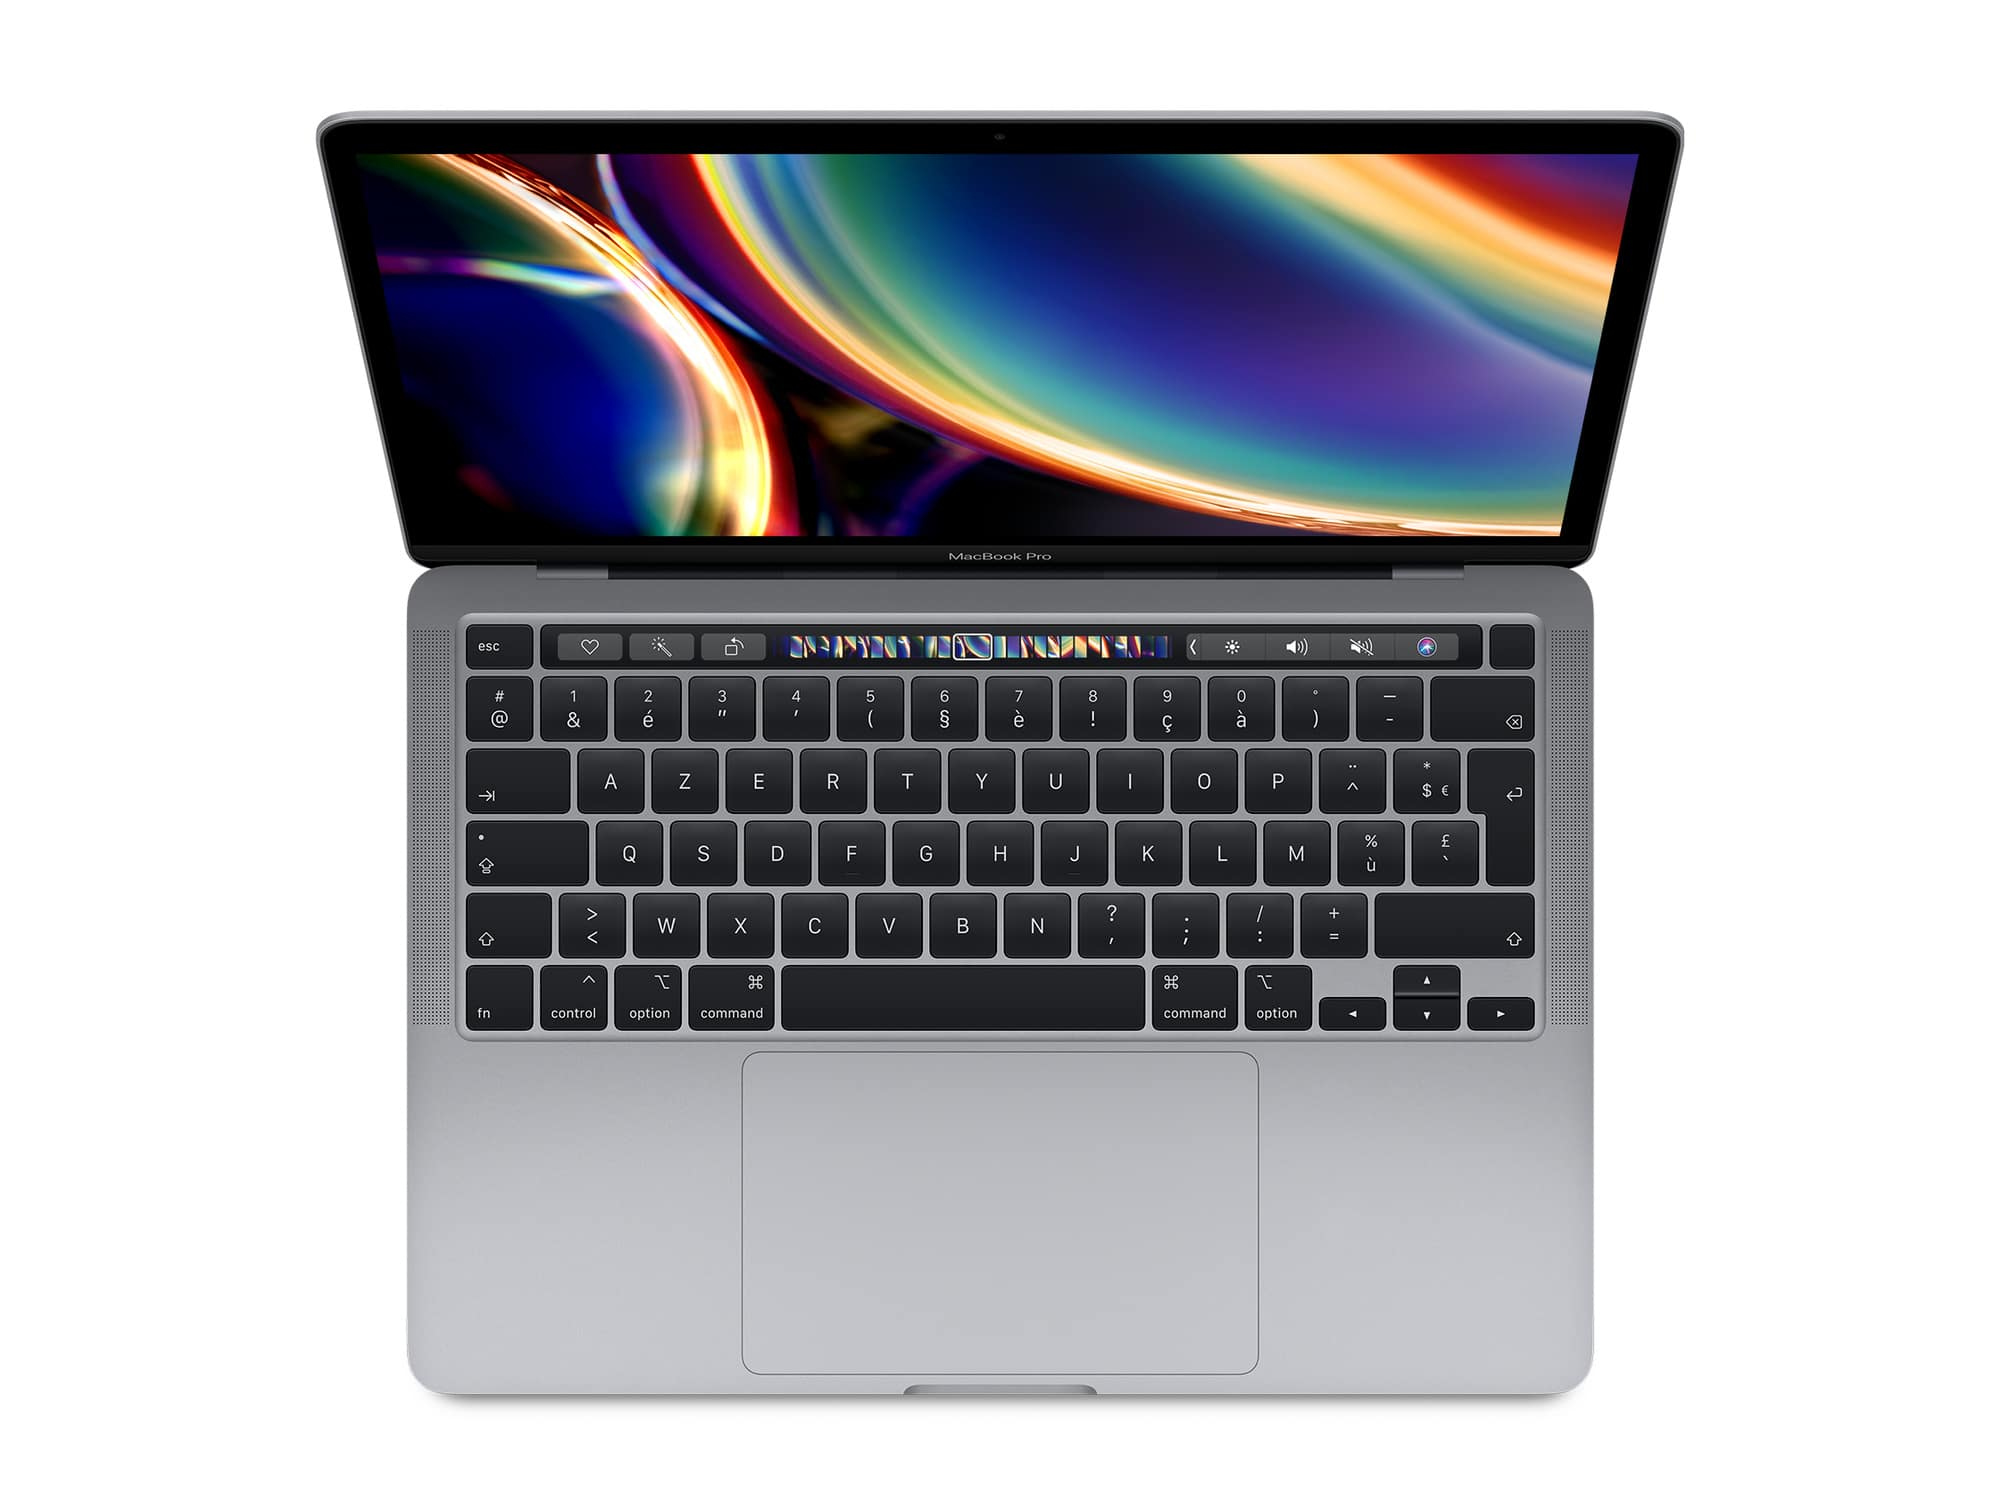 Apple MacBook Pro MacBook Pro für 1.461,23 Euro